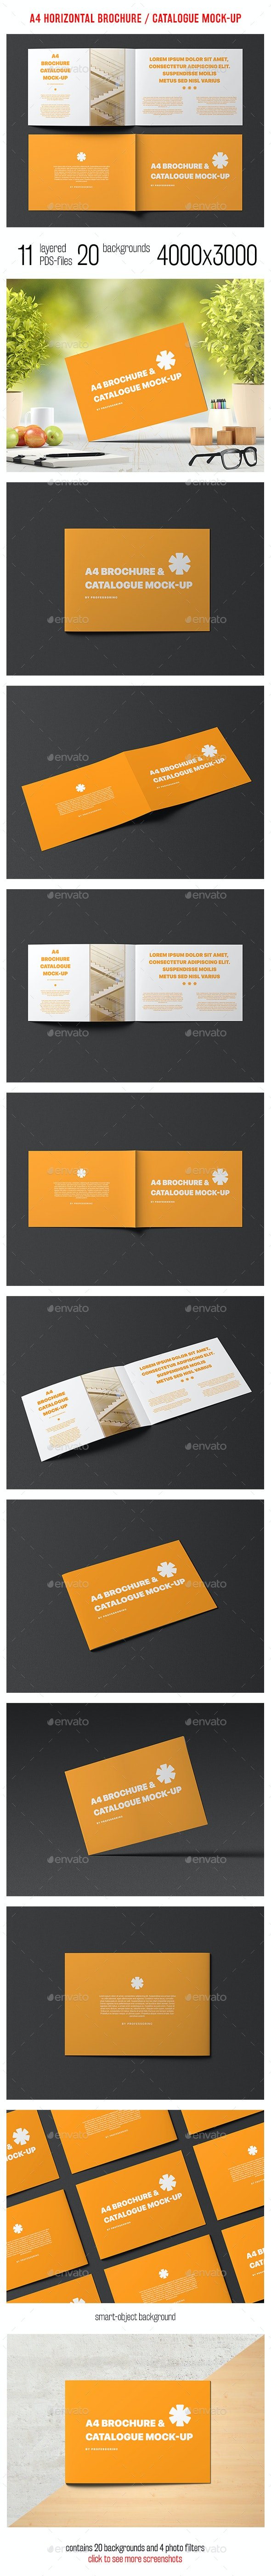 7 Best Product Mockups & Graphic Design Templates - GraphicRiver for February 2019